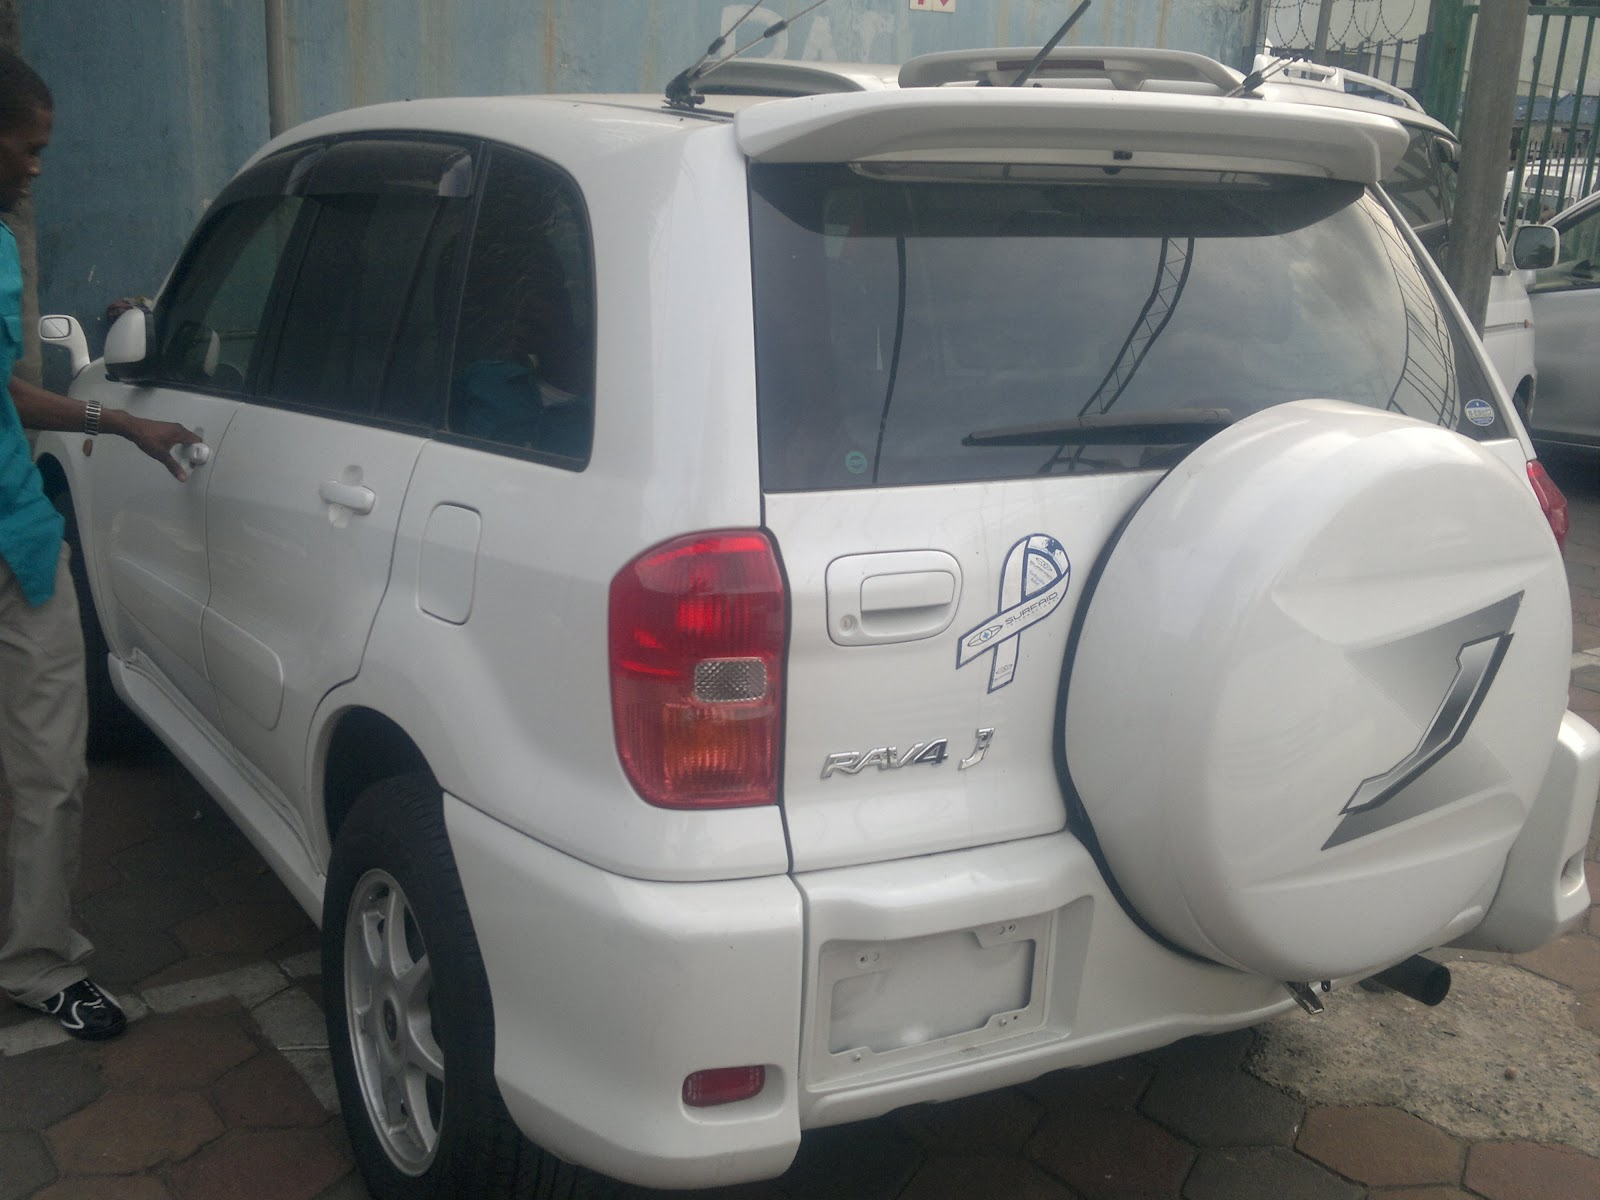 Looking Car for Sale Second Hand Unique Affordable Used Japanese Cars Trucks and Mini Buses In Durban south